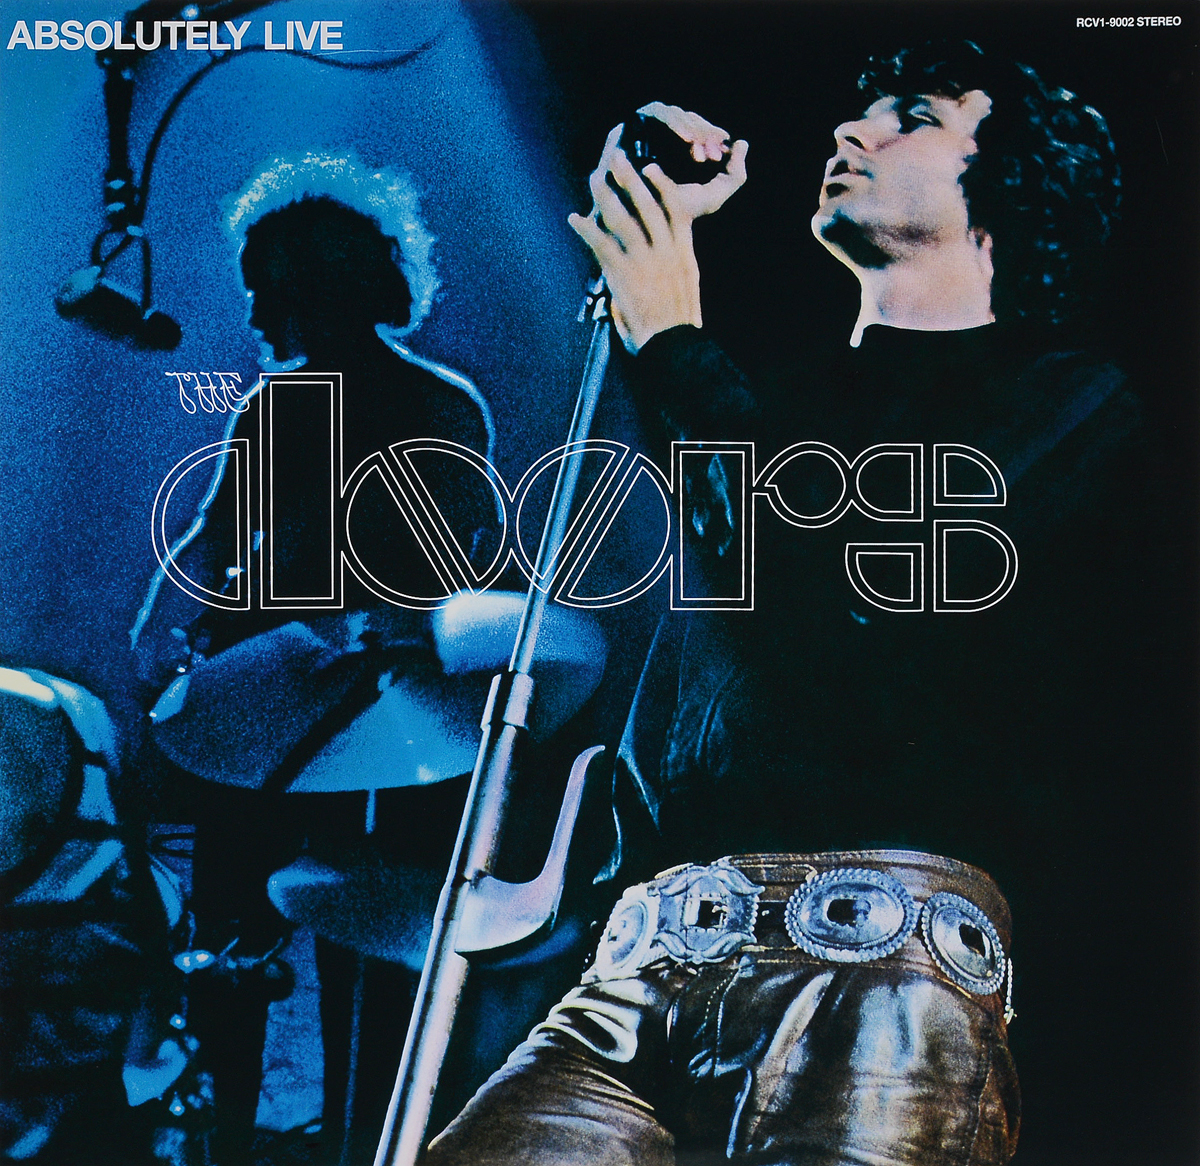 The Doors The Doors. Absolutely Live (2 LP) the doors the doors live in boston 1970 3 cd